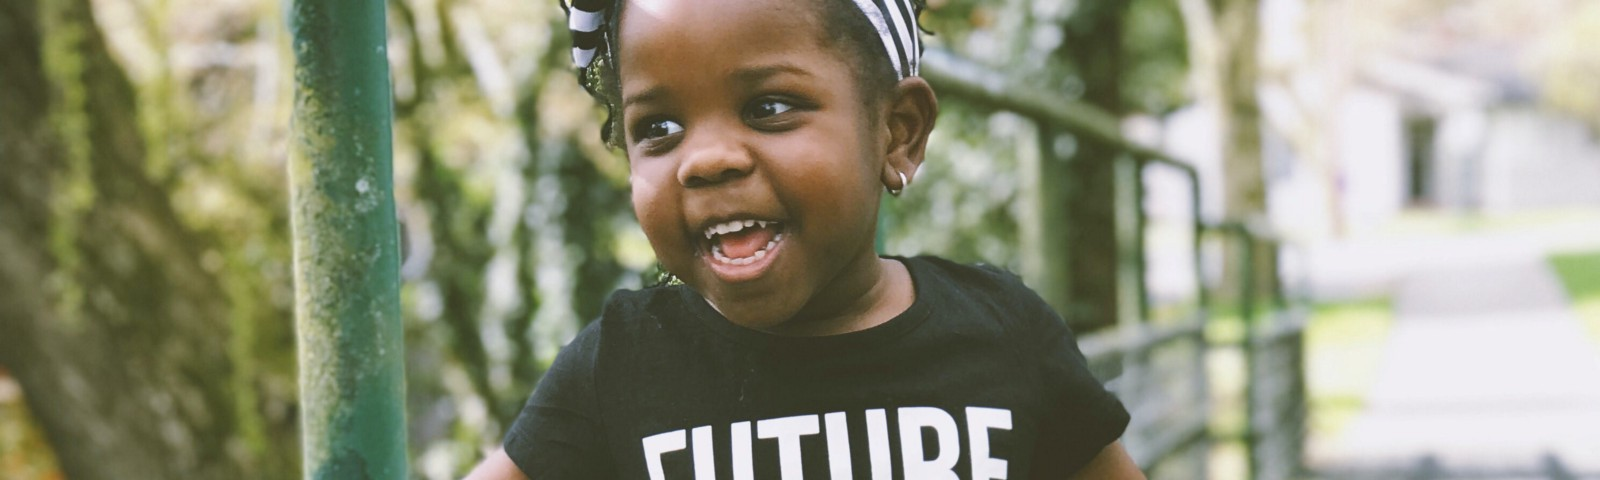 """Excited adorable kid, with brown skin and black braids in a striped headband, in a """"Future Leader"""" shirt, on a little bridge"""